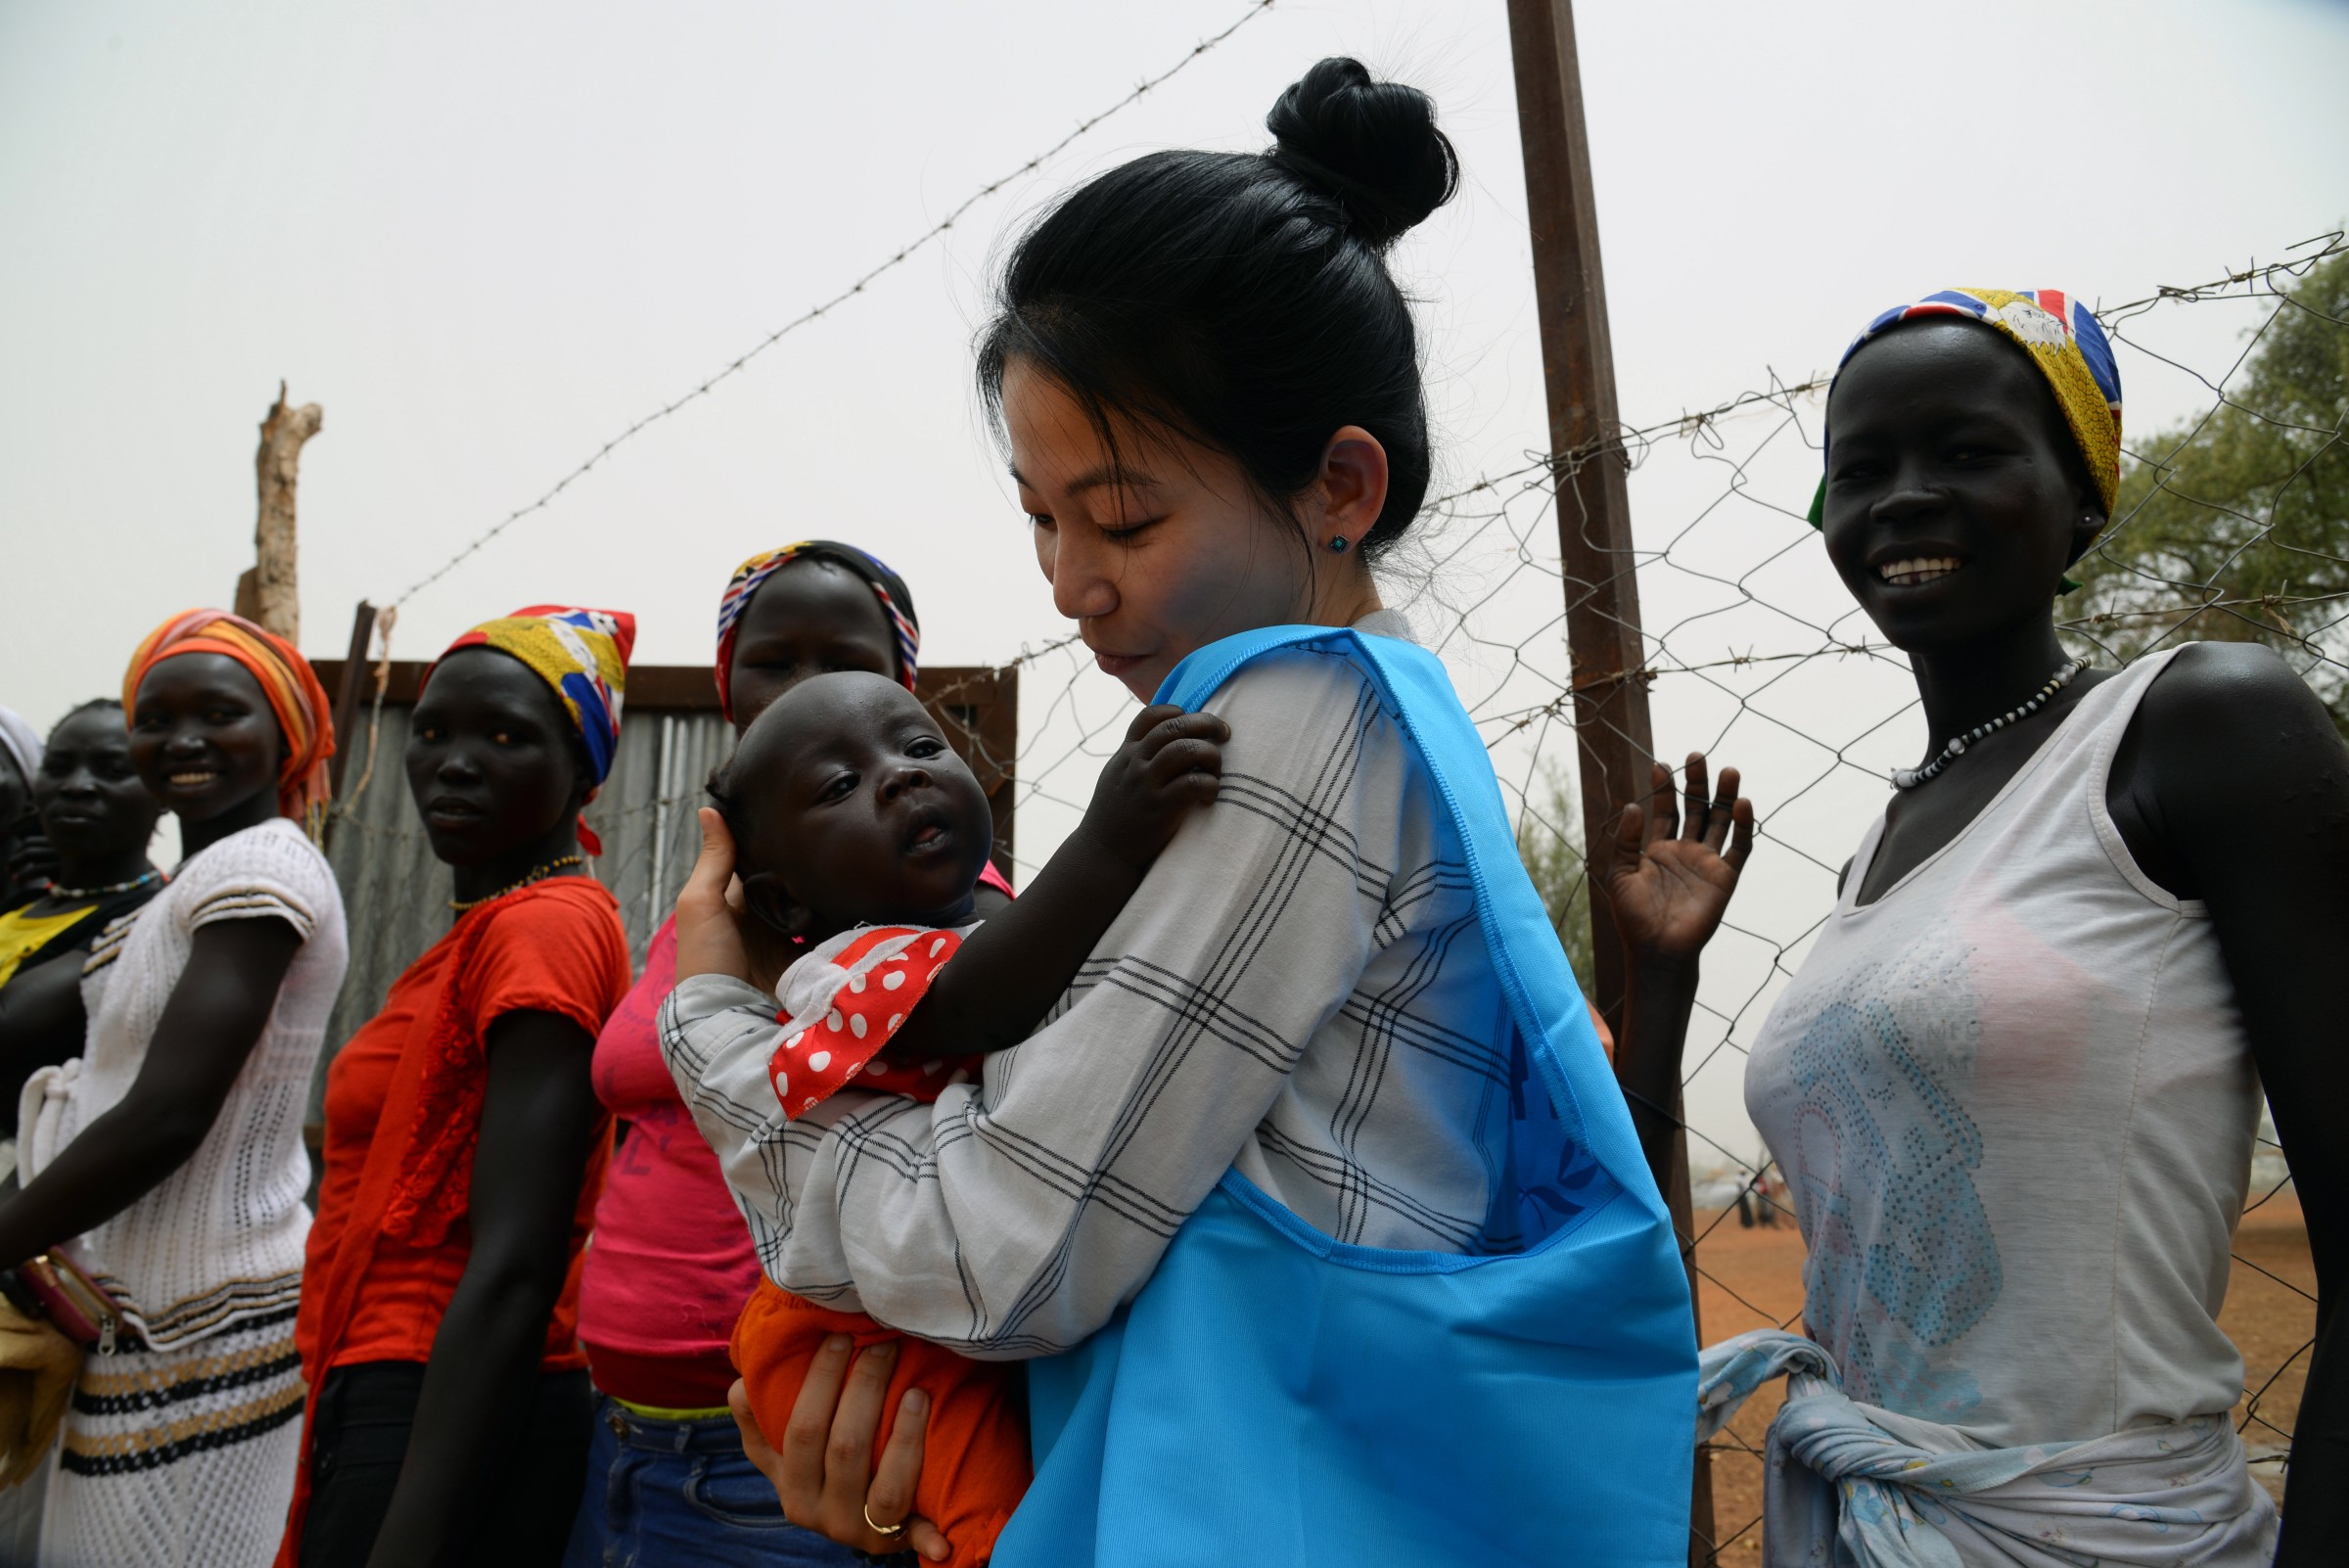 Unhcr real talk the thrills and risks of being a female humanitarian worker baf249bb 832c 4874 b51f 706838cc7a40